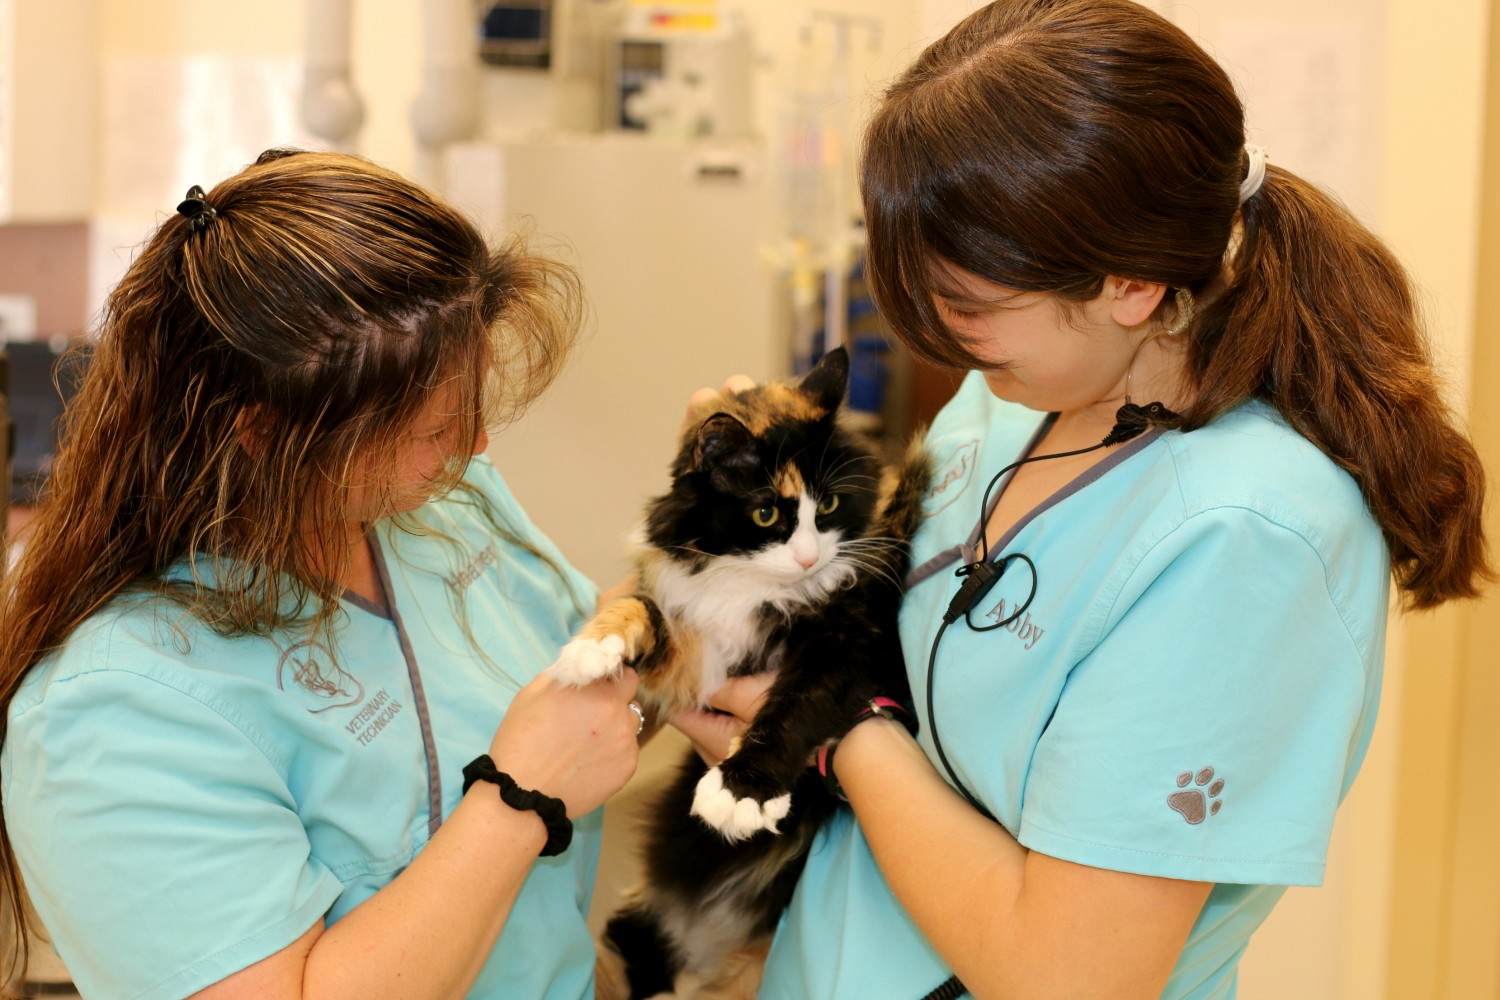 We are committed to providing Fear Free veterinary care to ensure the well-being of our patients